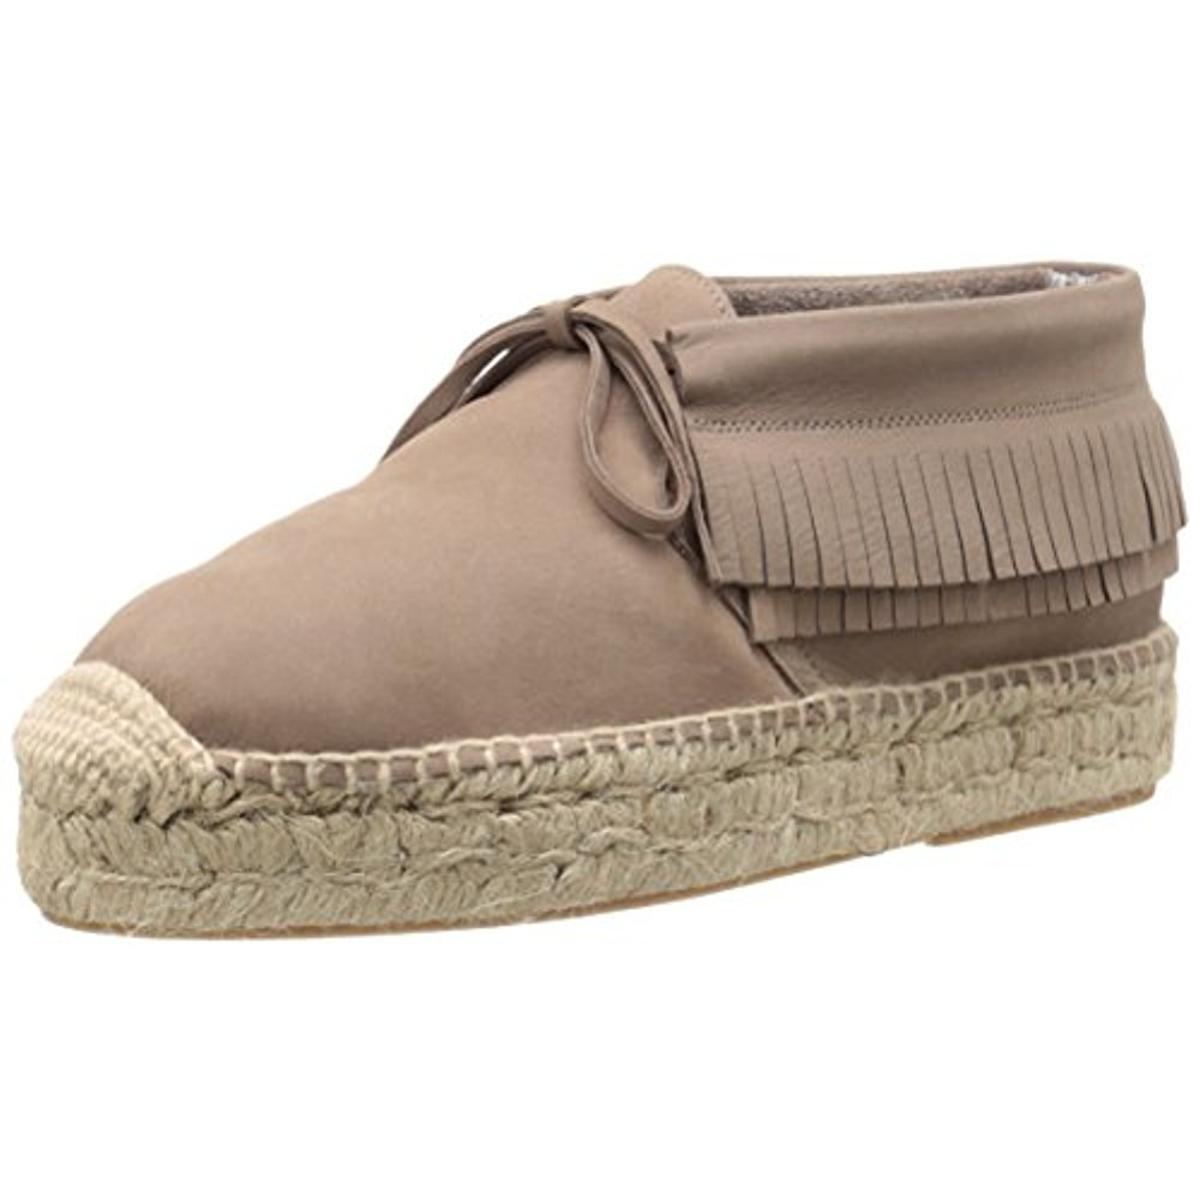 Bettye Muller Womens Podcast Suede Boho Espadrilles